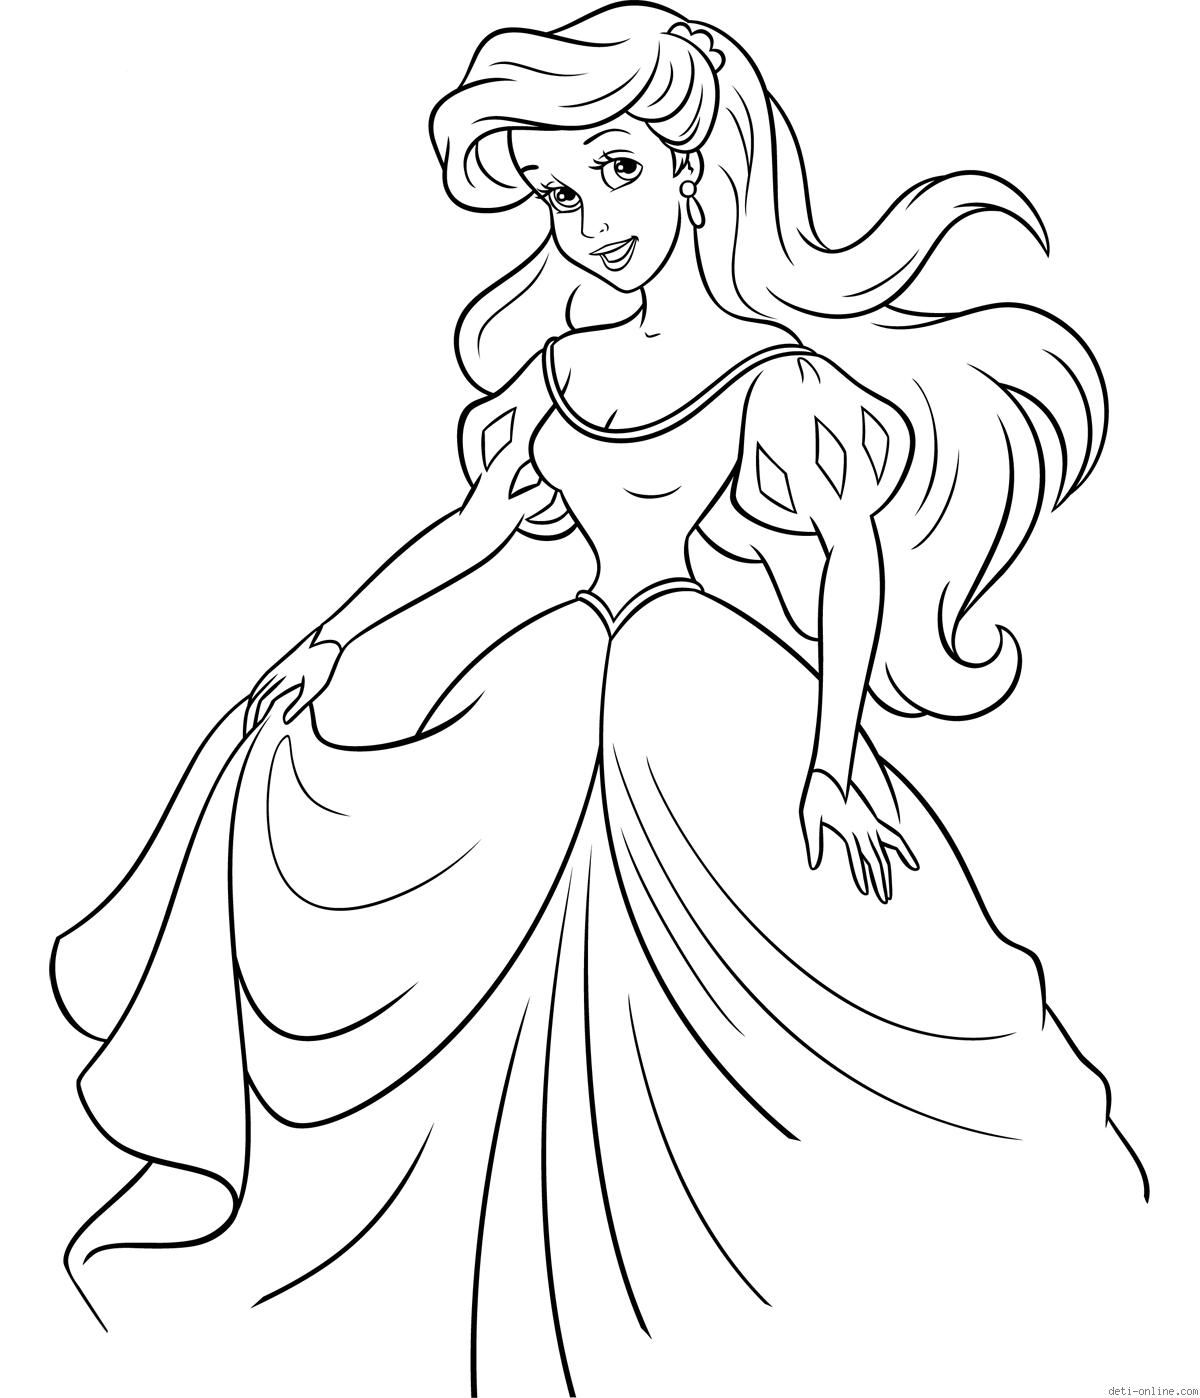 Ariel The Little Mermaid Coloring Pages For Girls To Print For Free Ariel Coloring Pages Mermaid Coloring Pages Disney Princess Coloring Pages